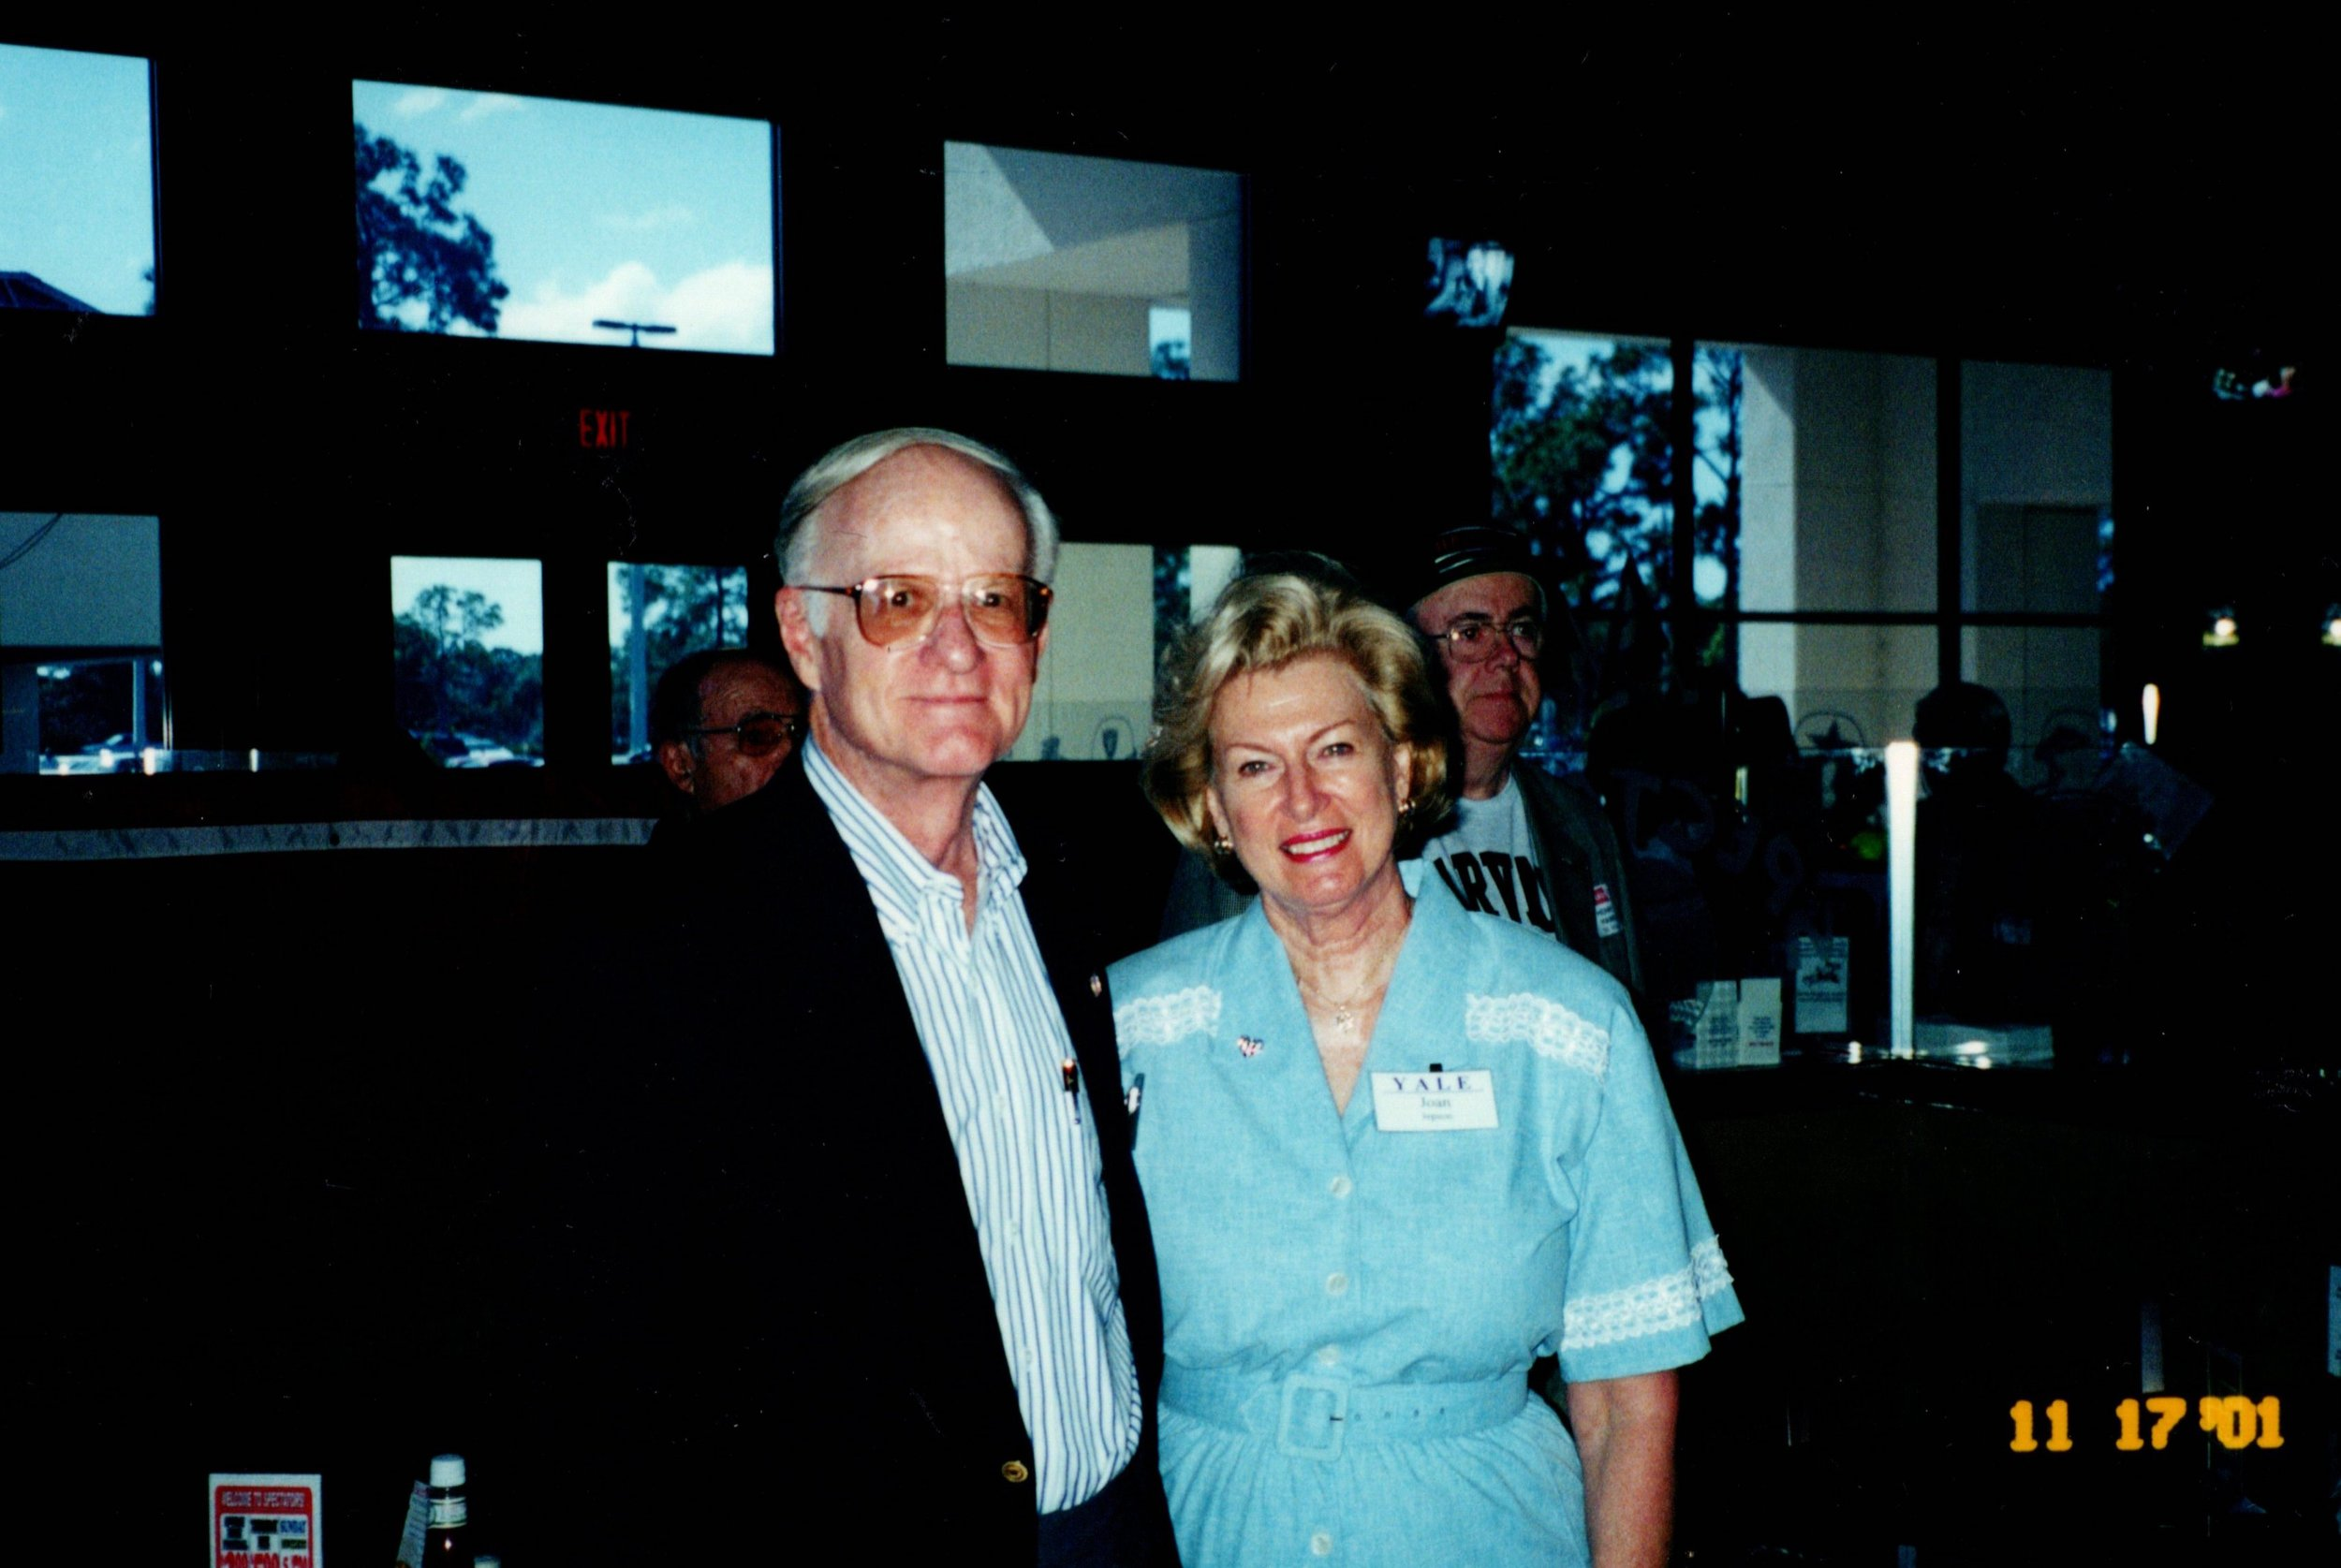 JOAN AND JOHN JEPSON